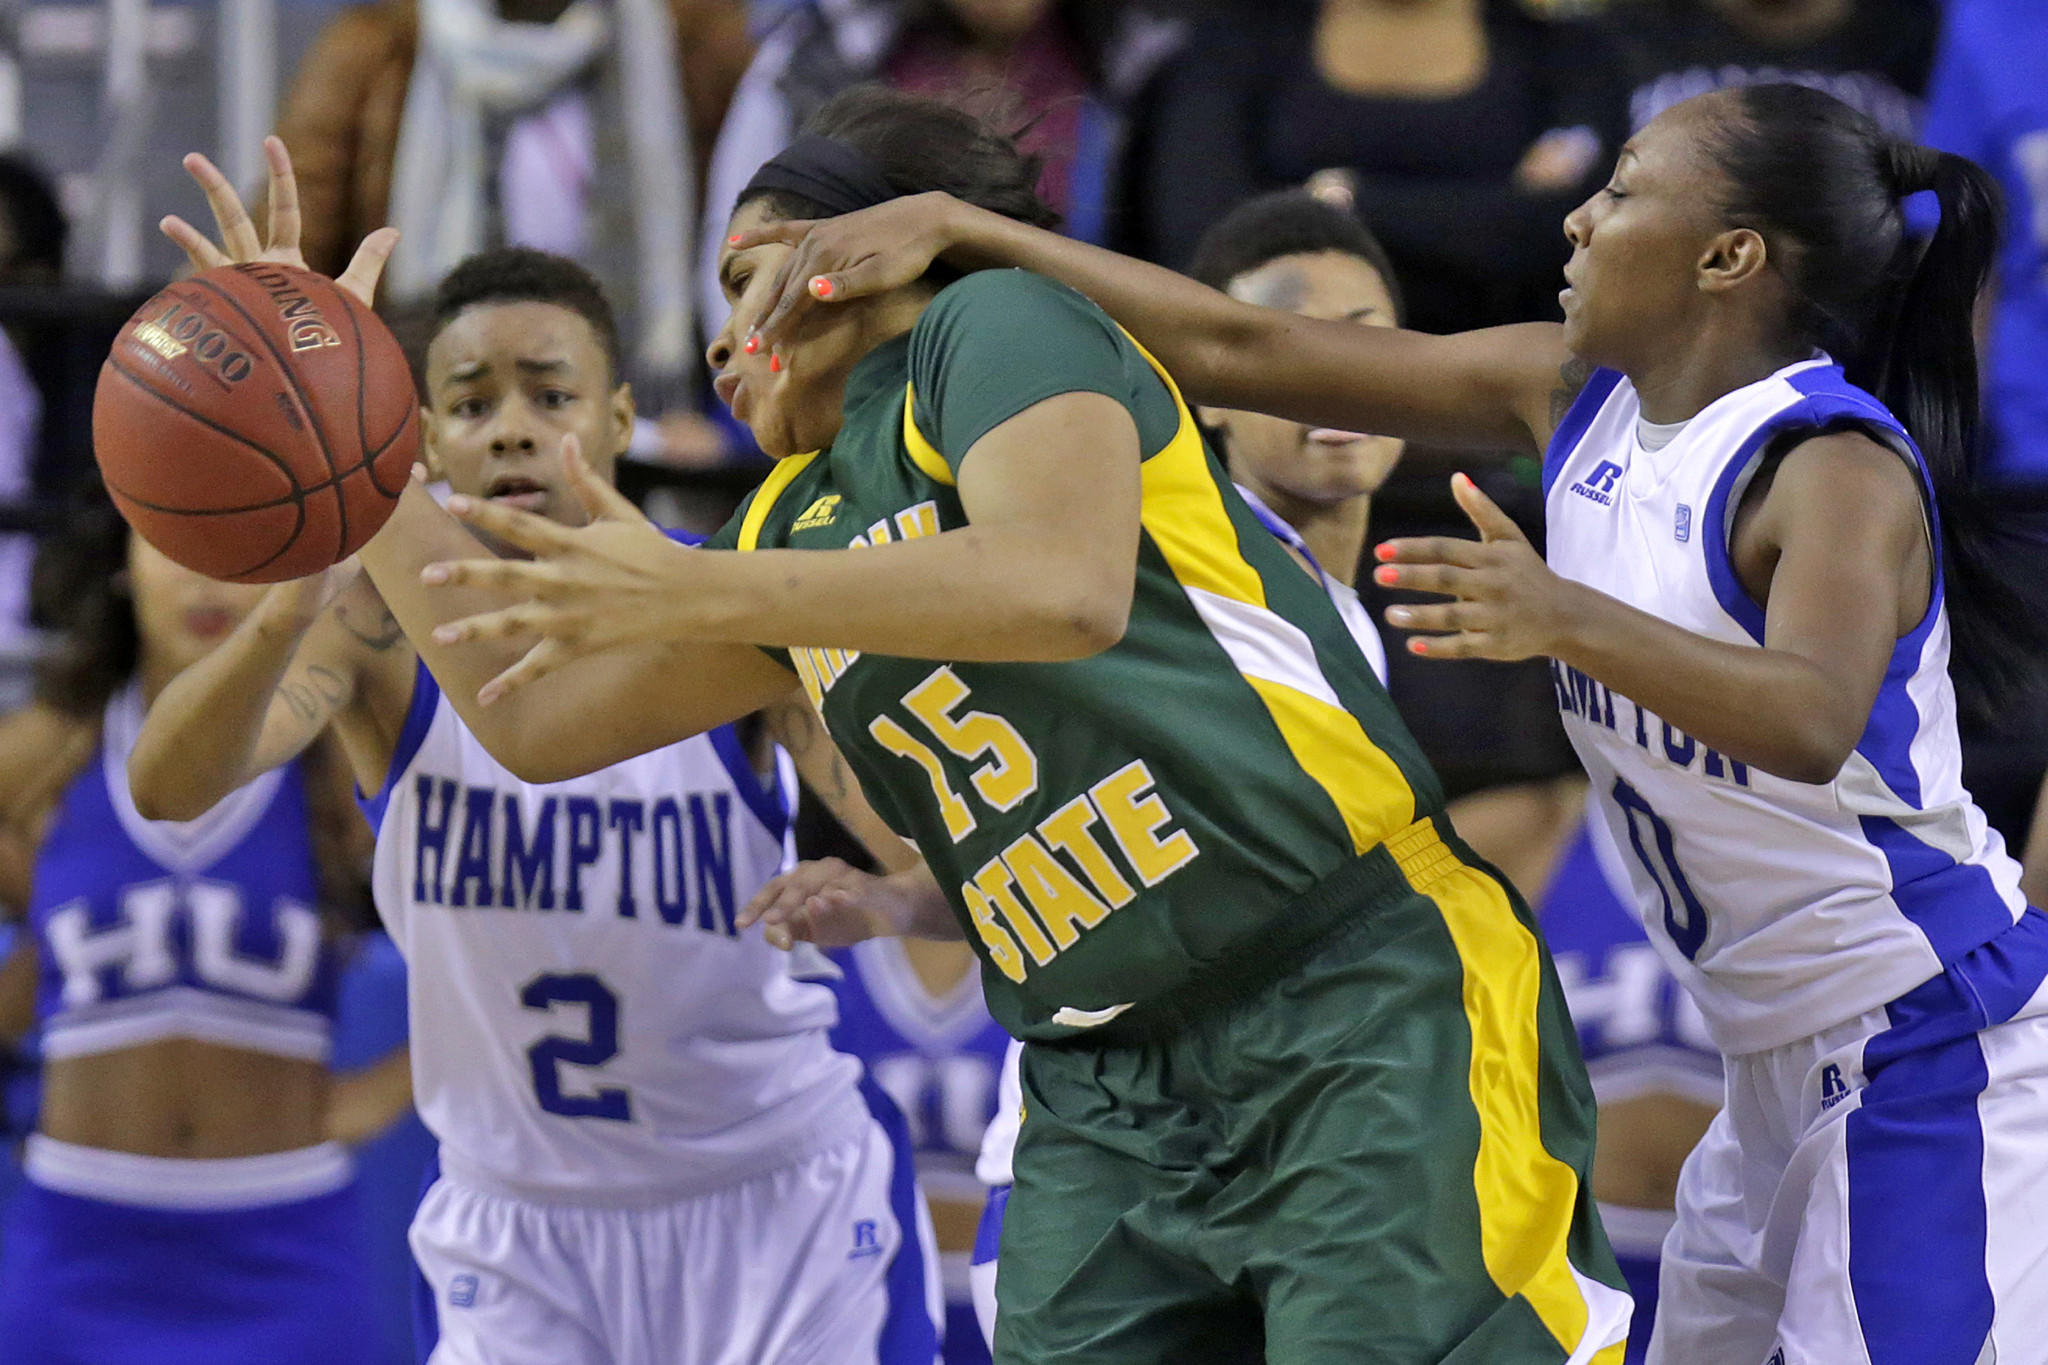 Hampton's Malia Tate-DeFreitas, right, battles for a loose ball with Norfolk State's Logan Powell on Saturday in Hampton.